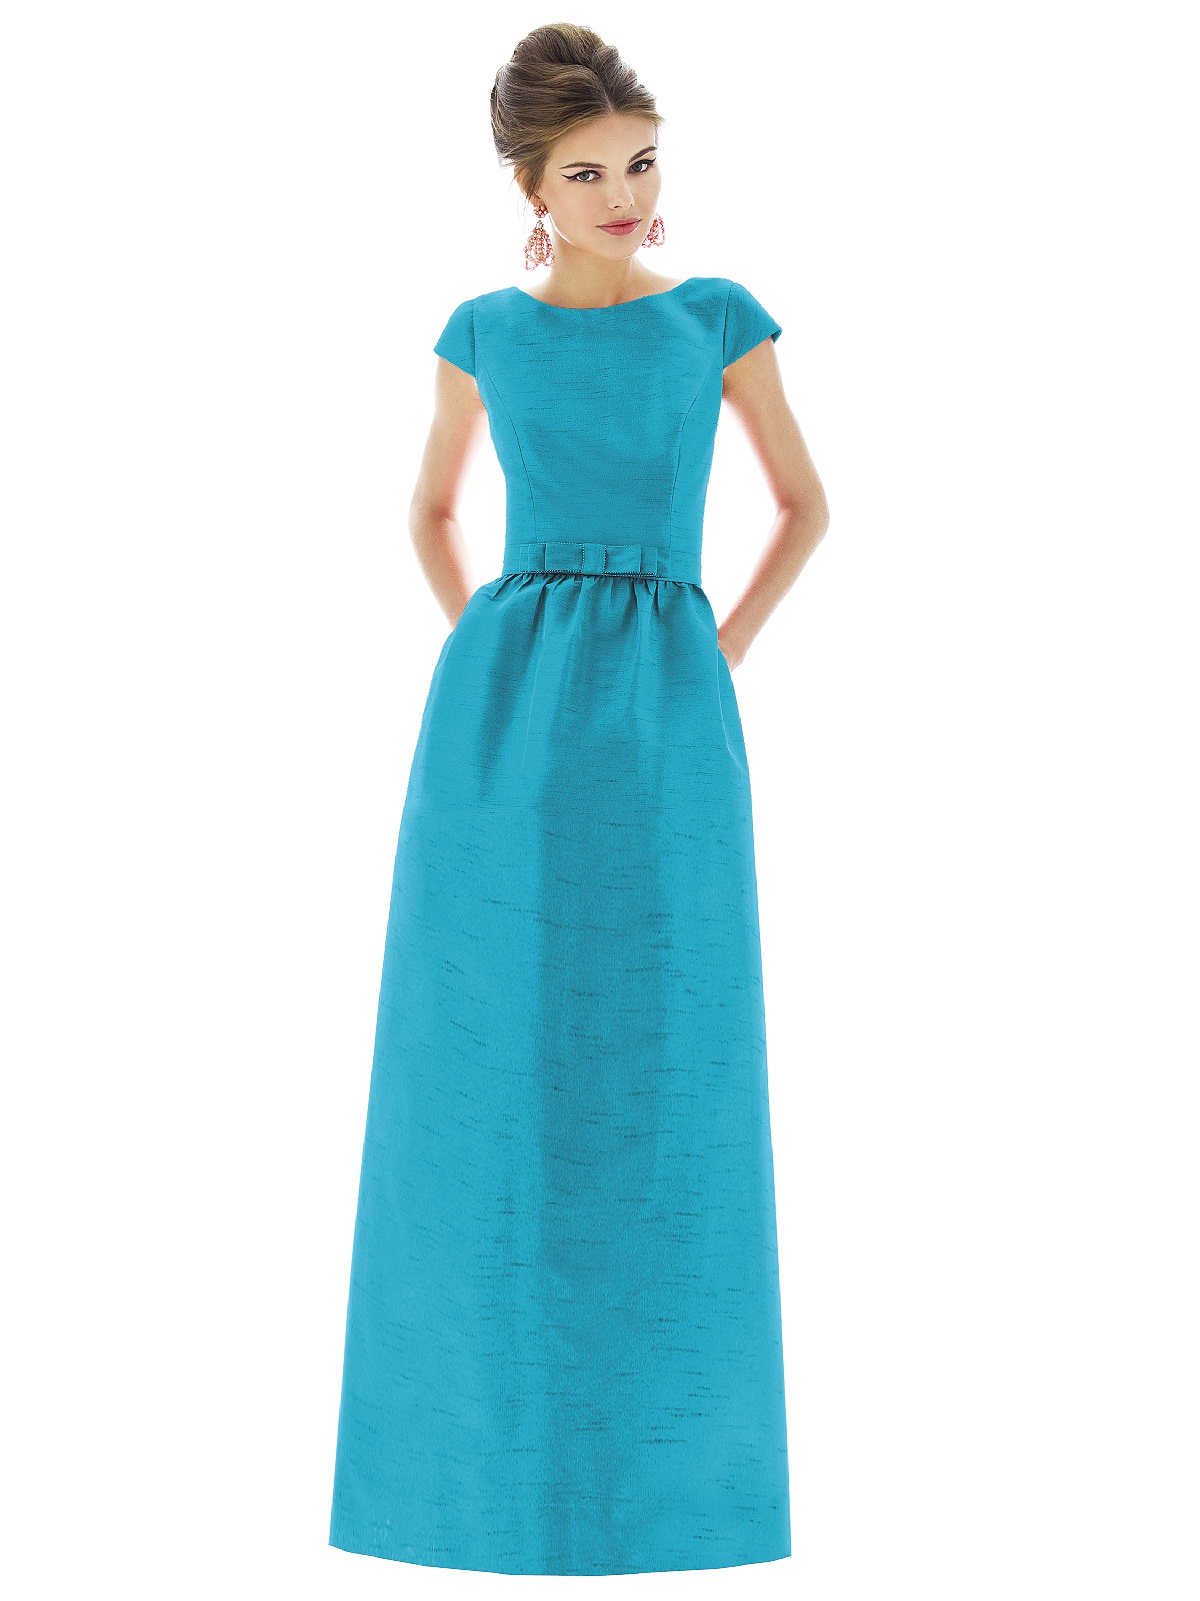 Alfred sung bridesmaid dressesalfred sung dresses 570the dessy alfred sung bridesmaid dresses alfred sung d569 ombrellifo Choice Image